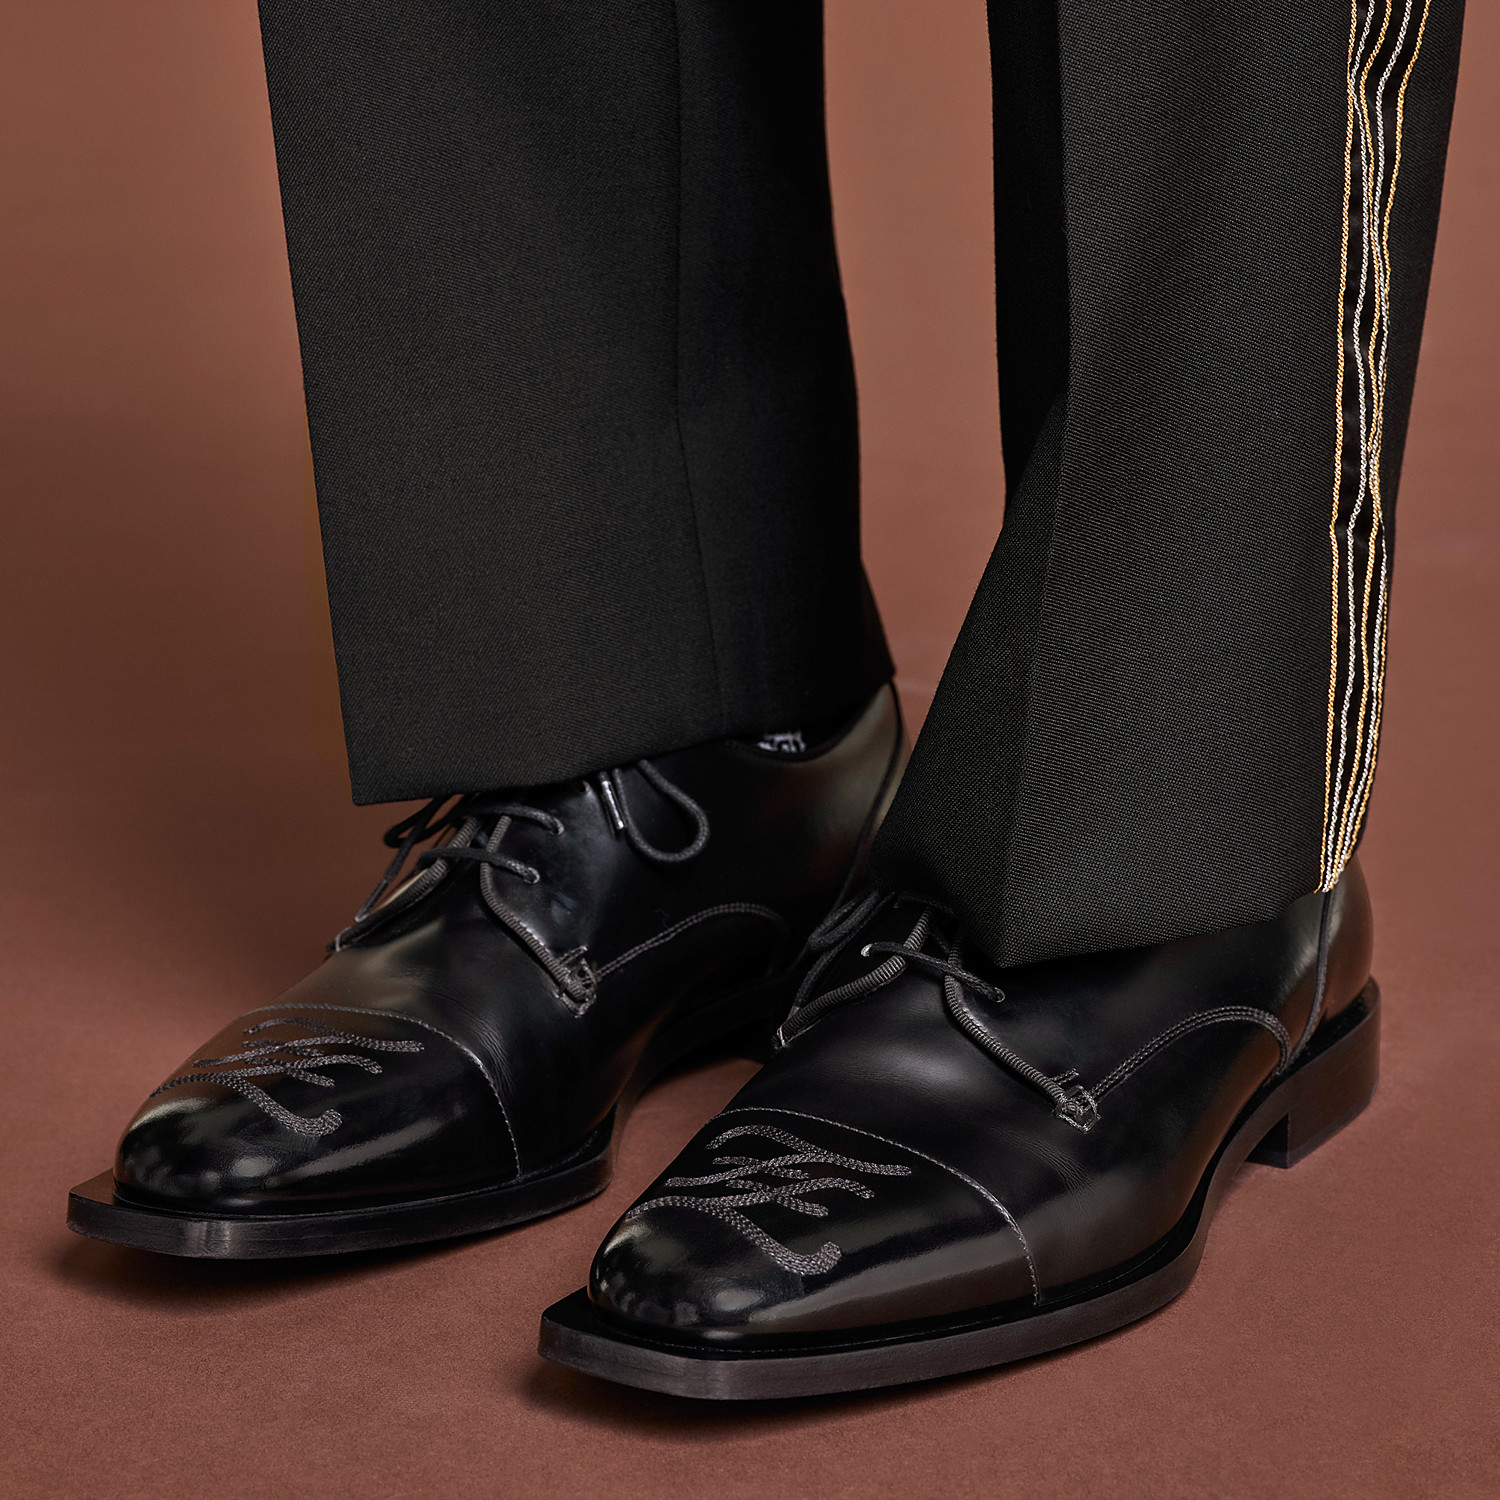 FENDI LACE-UPS - Black leather lace-up - view 5 detail